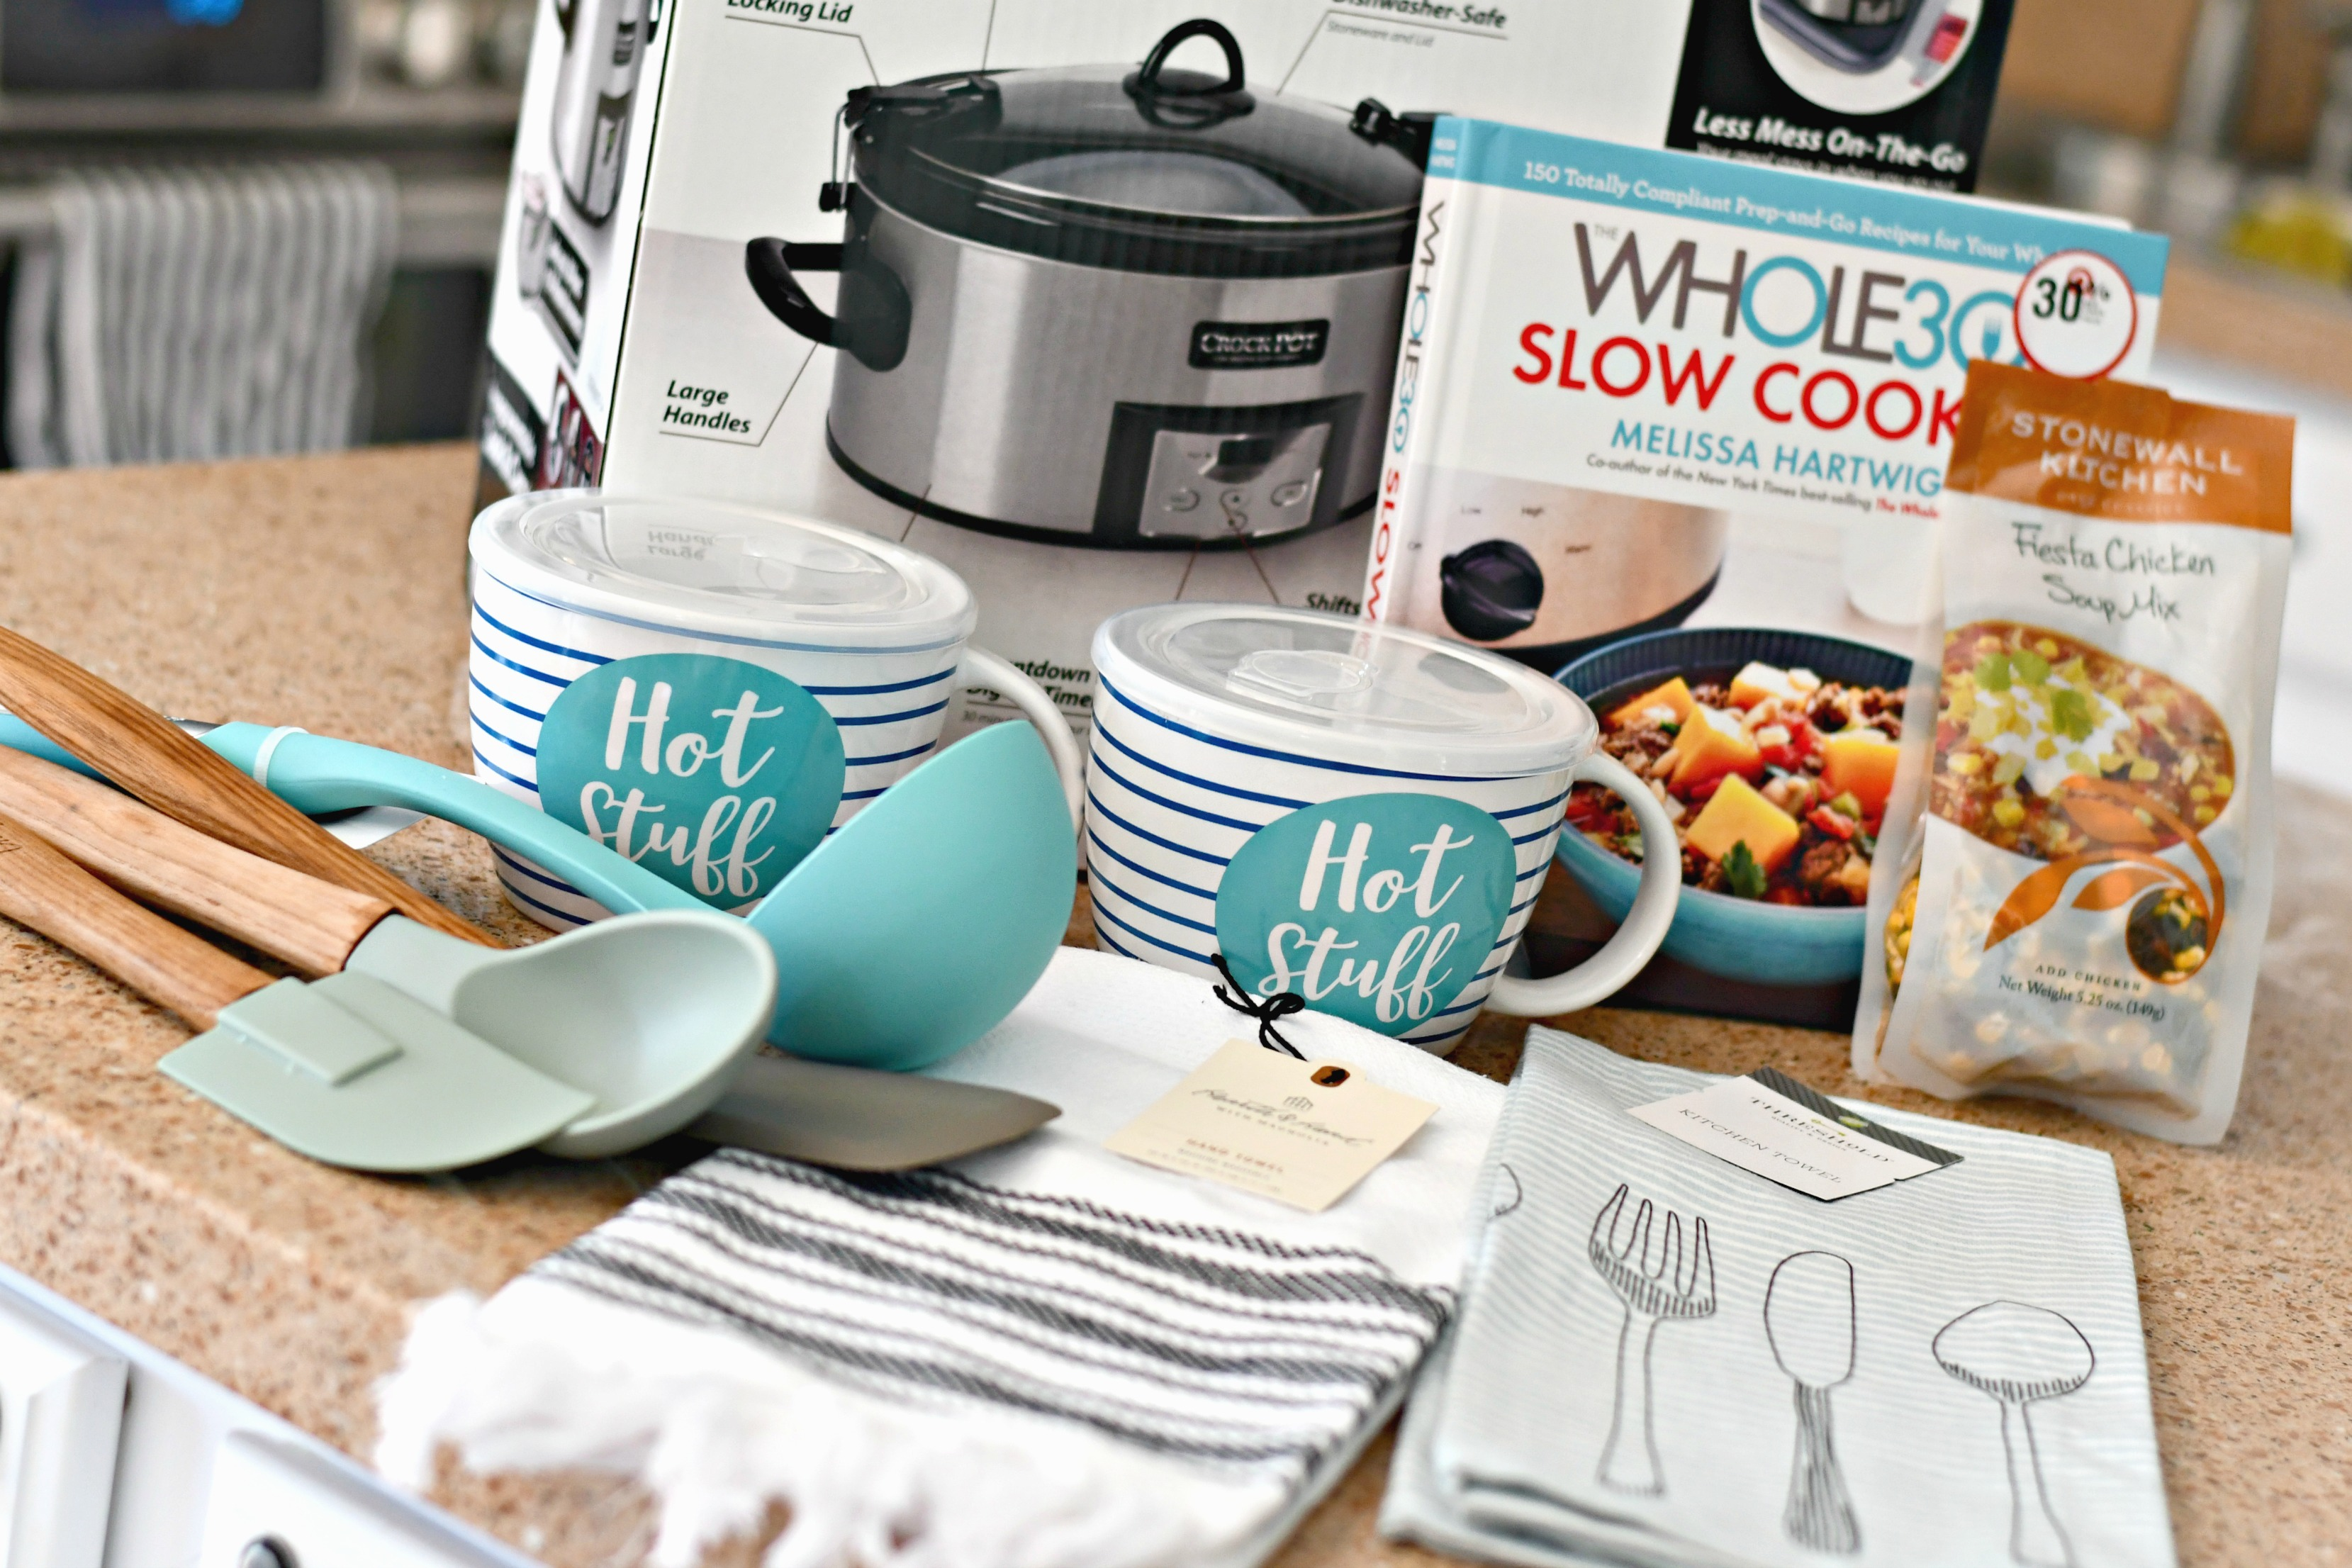 diy gift slow cooker gift basket – serving spoons, towels, cookbook, packet, and slow cooker